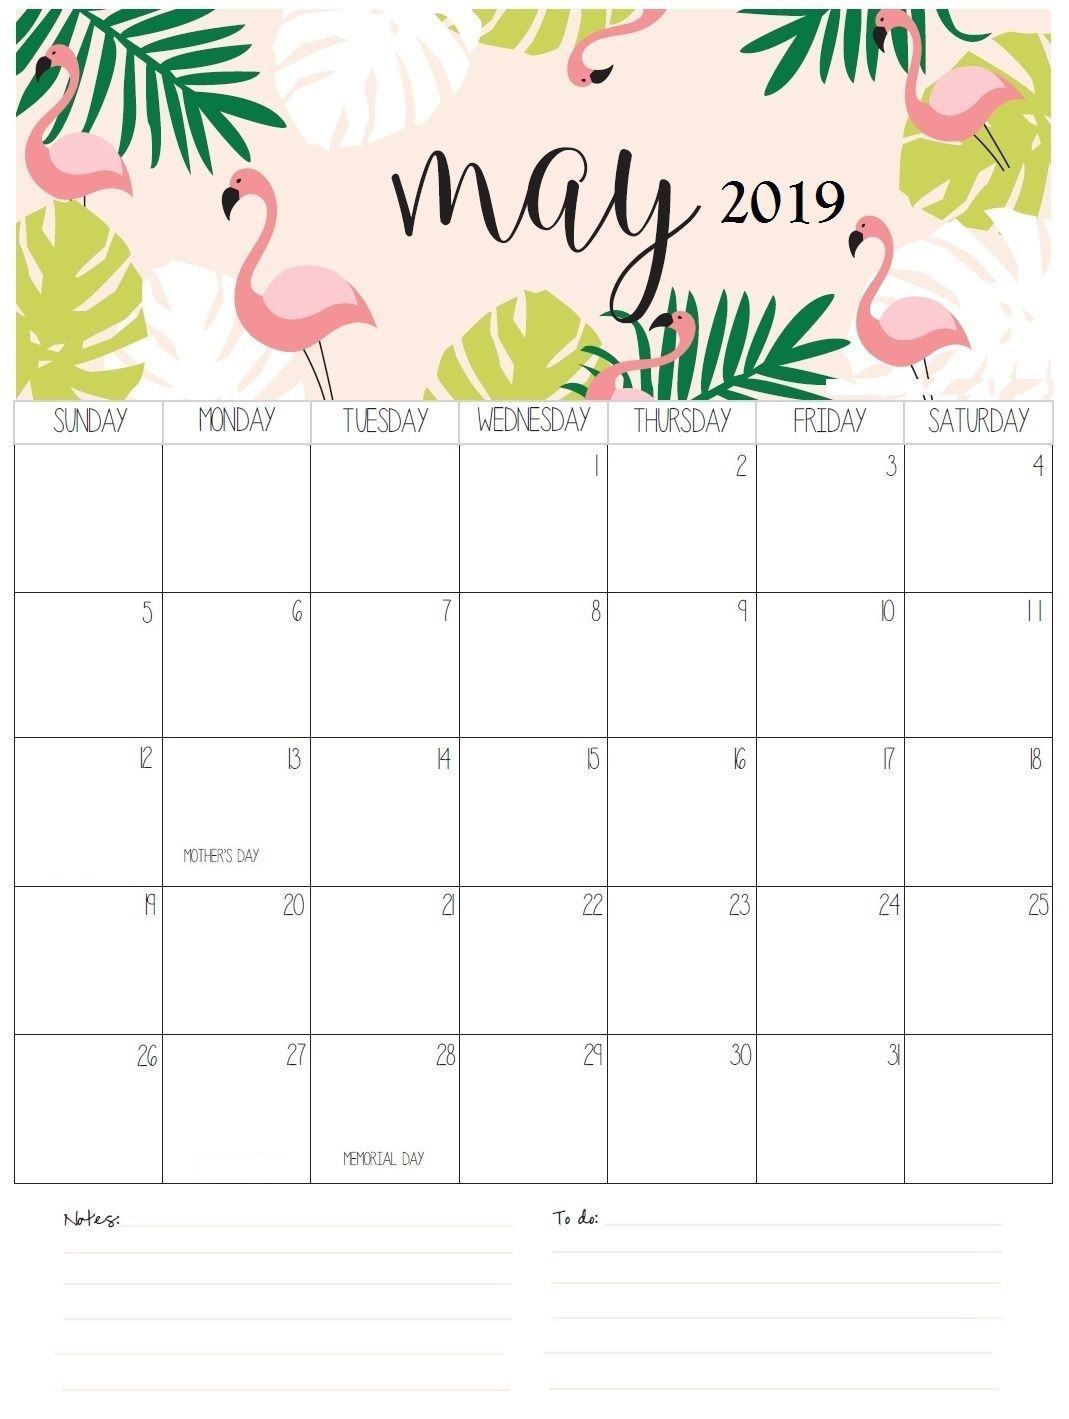 Download May Printable Calendar Template Free Printablemay Calendar Example